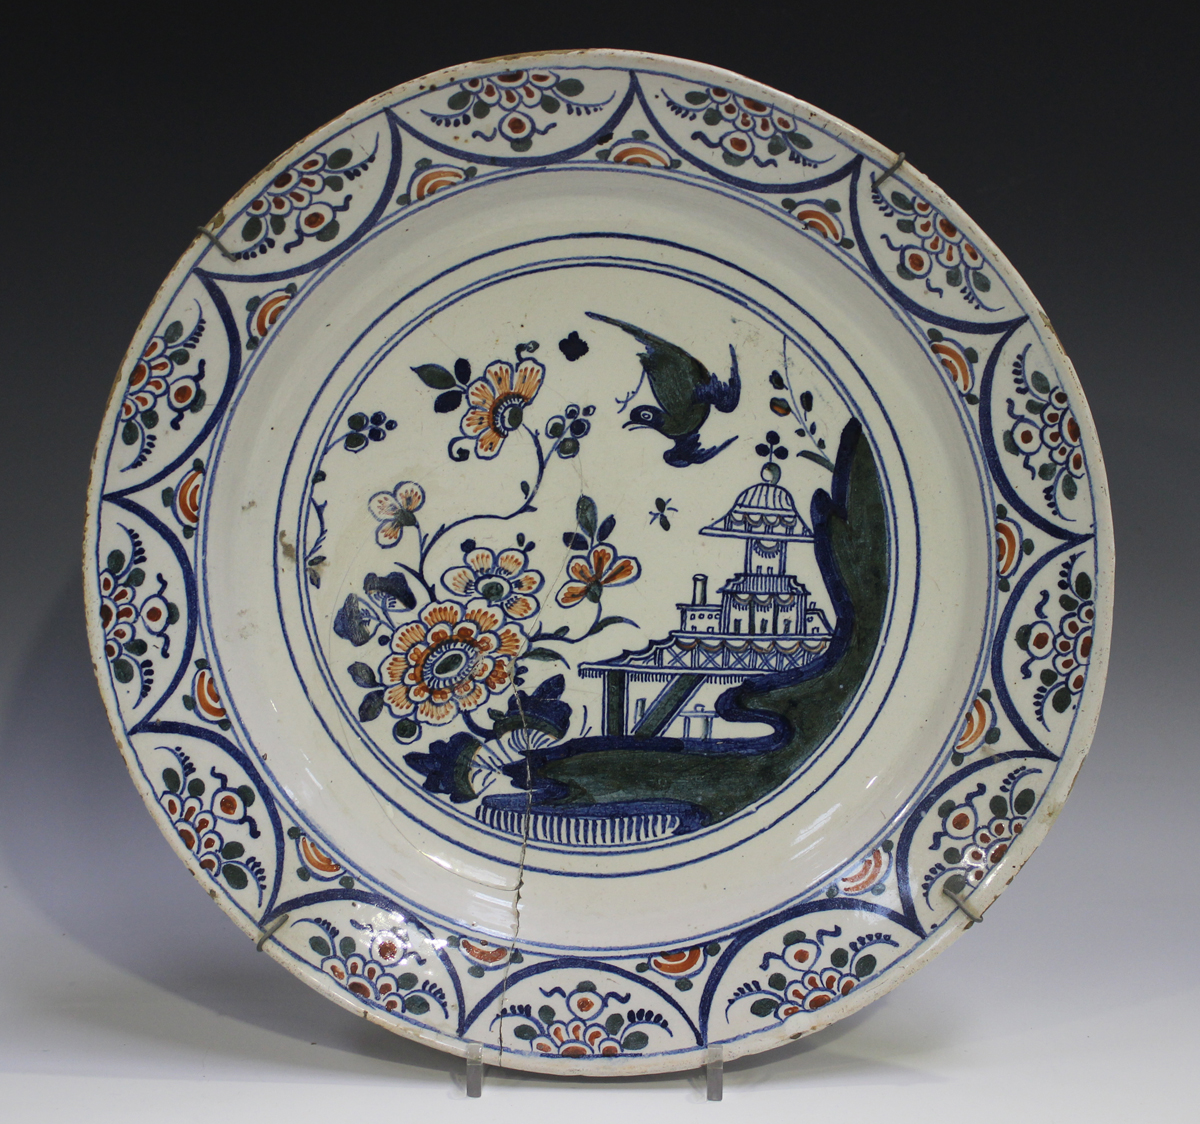 An English Delft charger, Bristol, 18th century, painted in blue, green and red with a chinoiserie